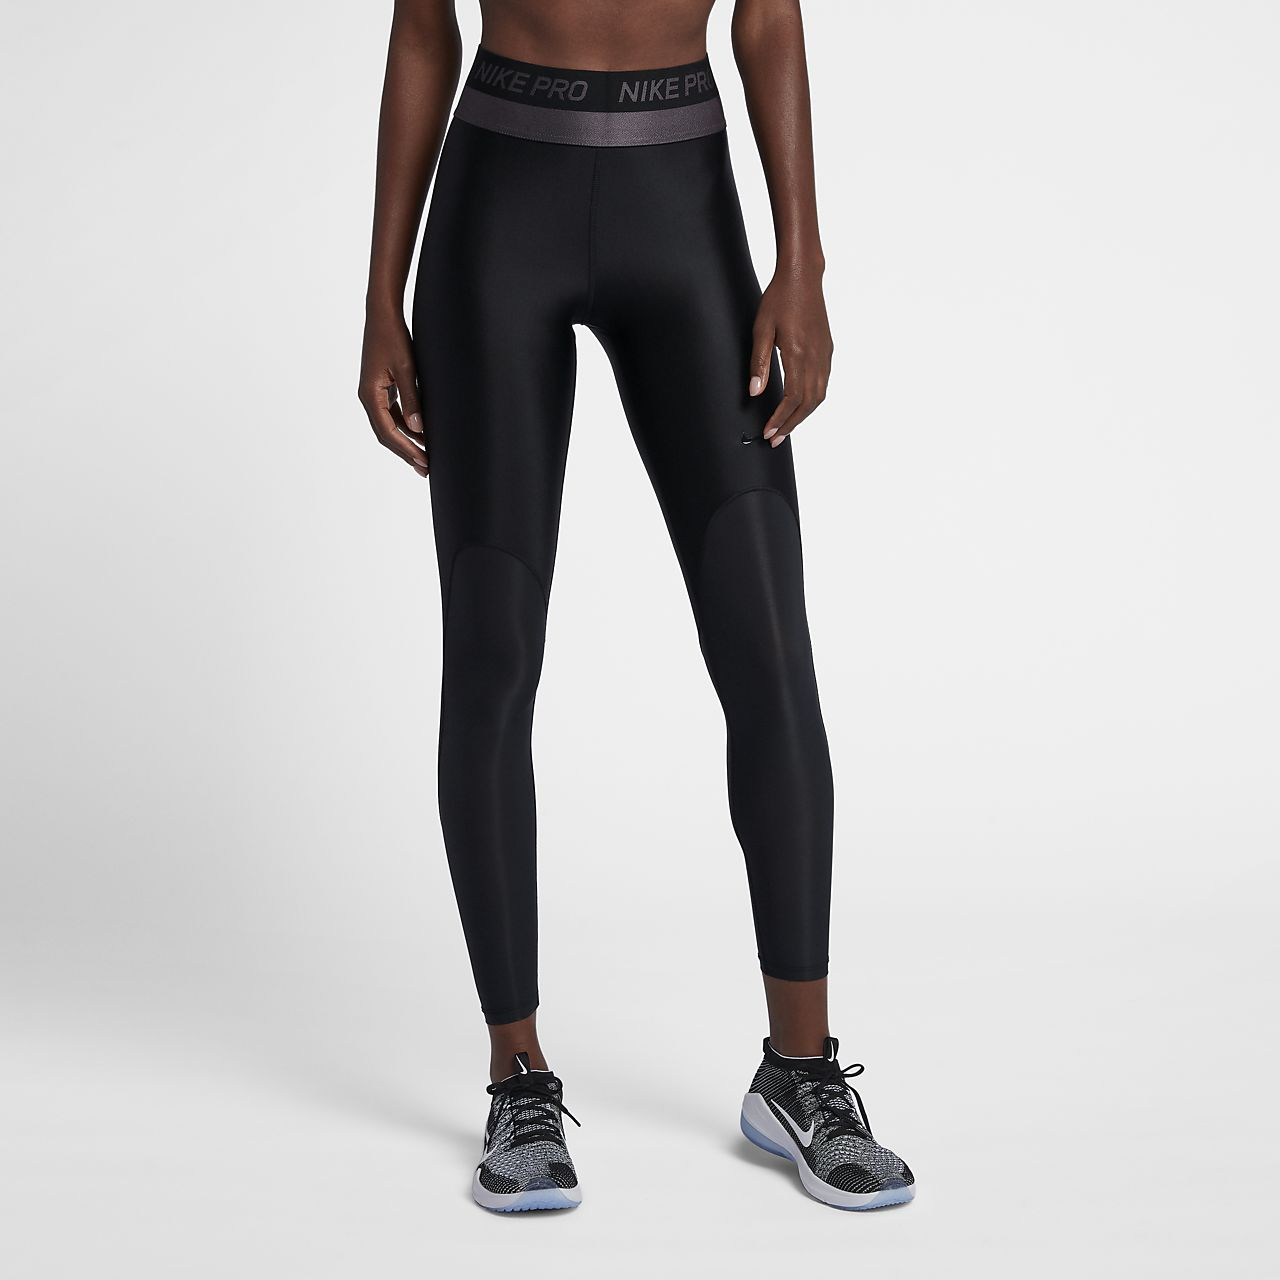 29df2f6fb6ea1 Nike Pro HyperCool Women's Mid-Rise Training Tights. Nike.com IL